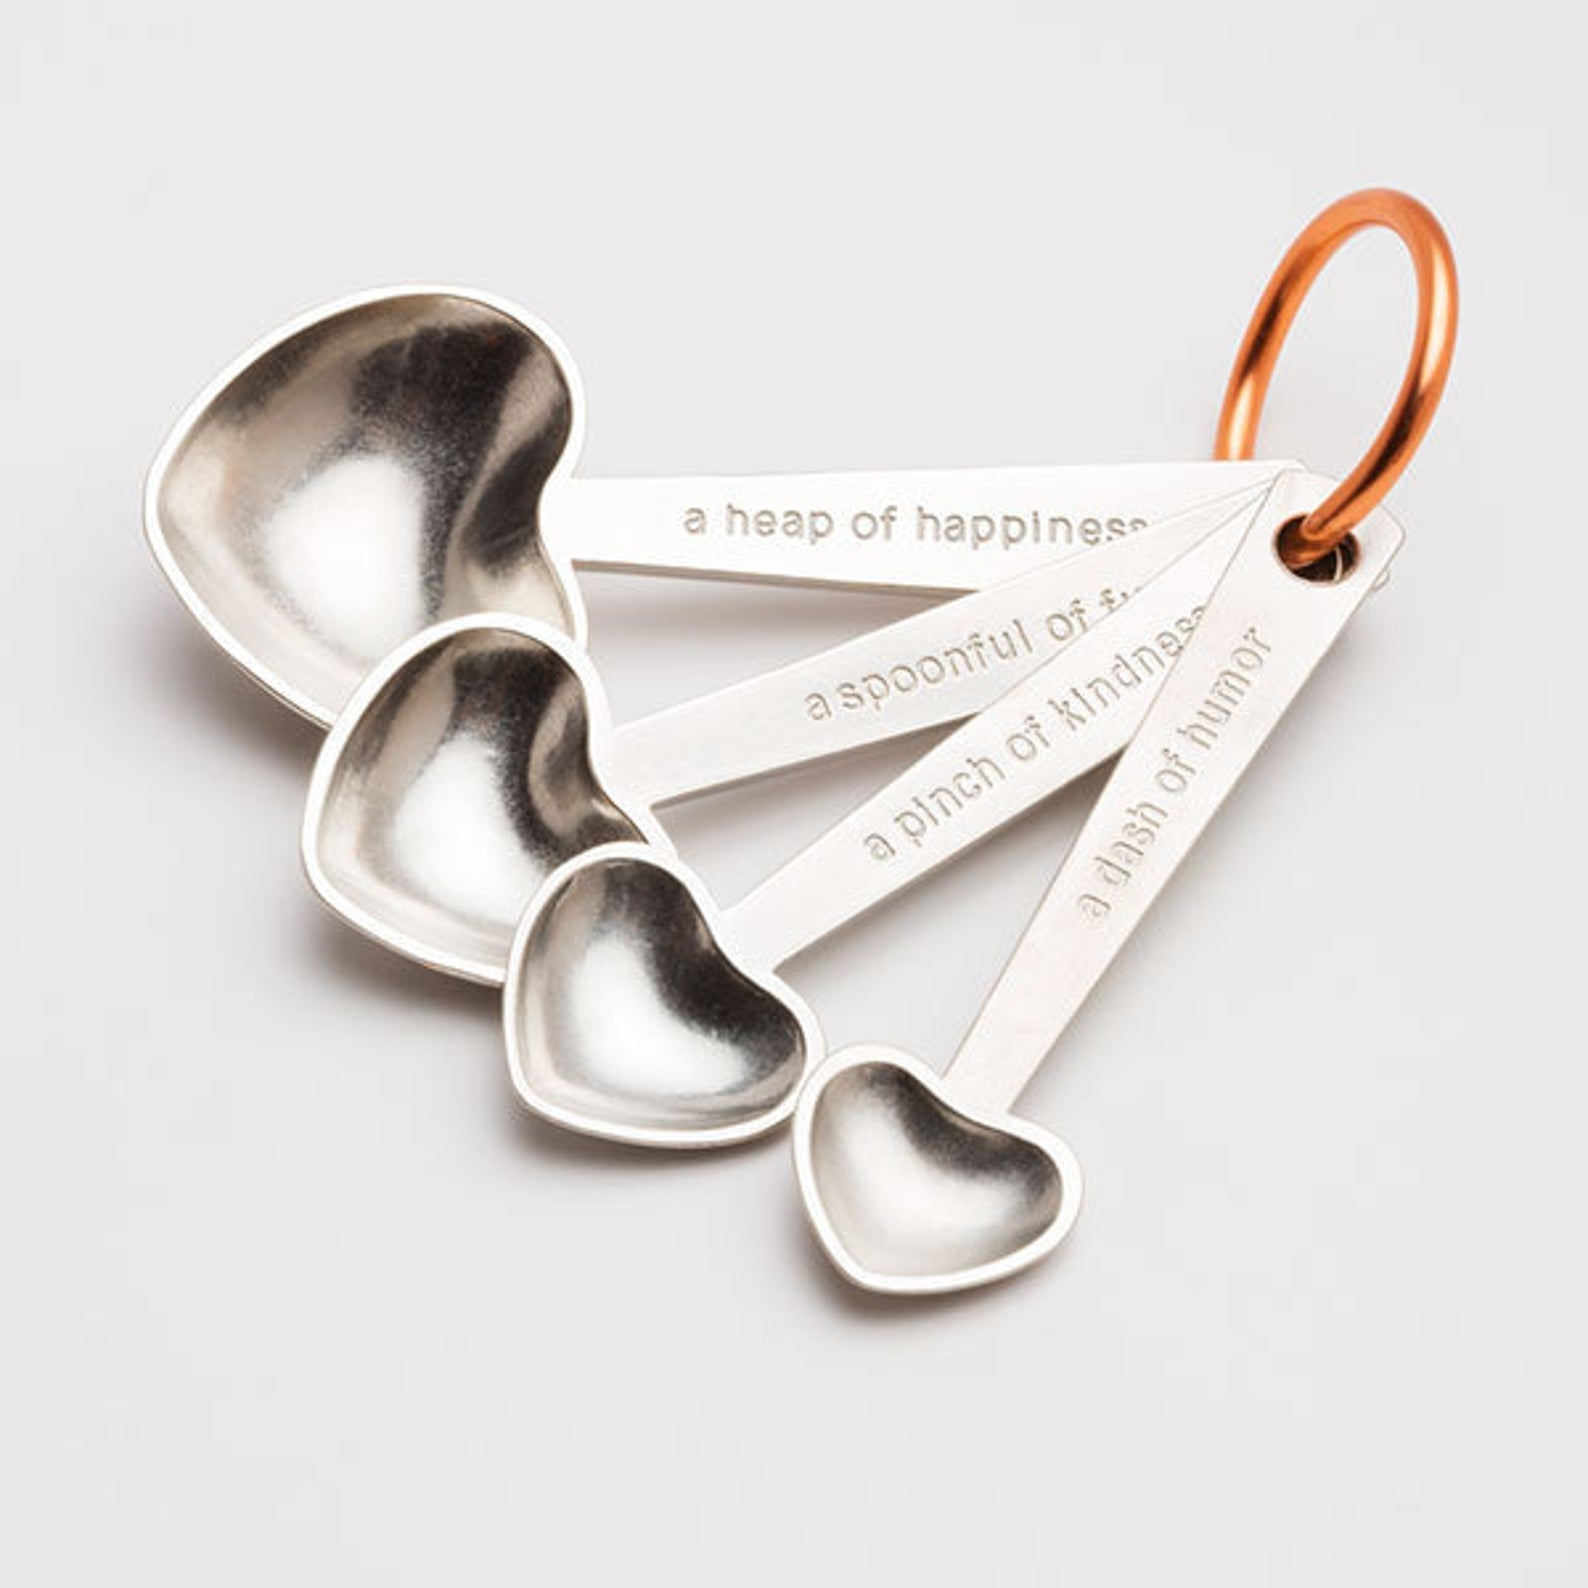 Beehive Handmade Heart Quotes Measuring Spoons